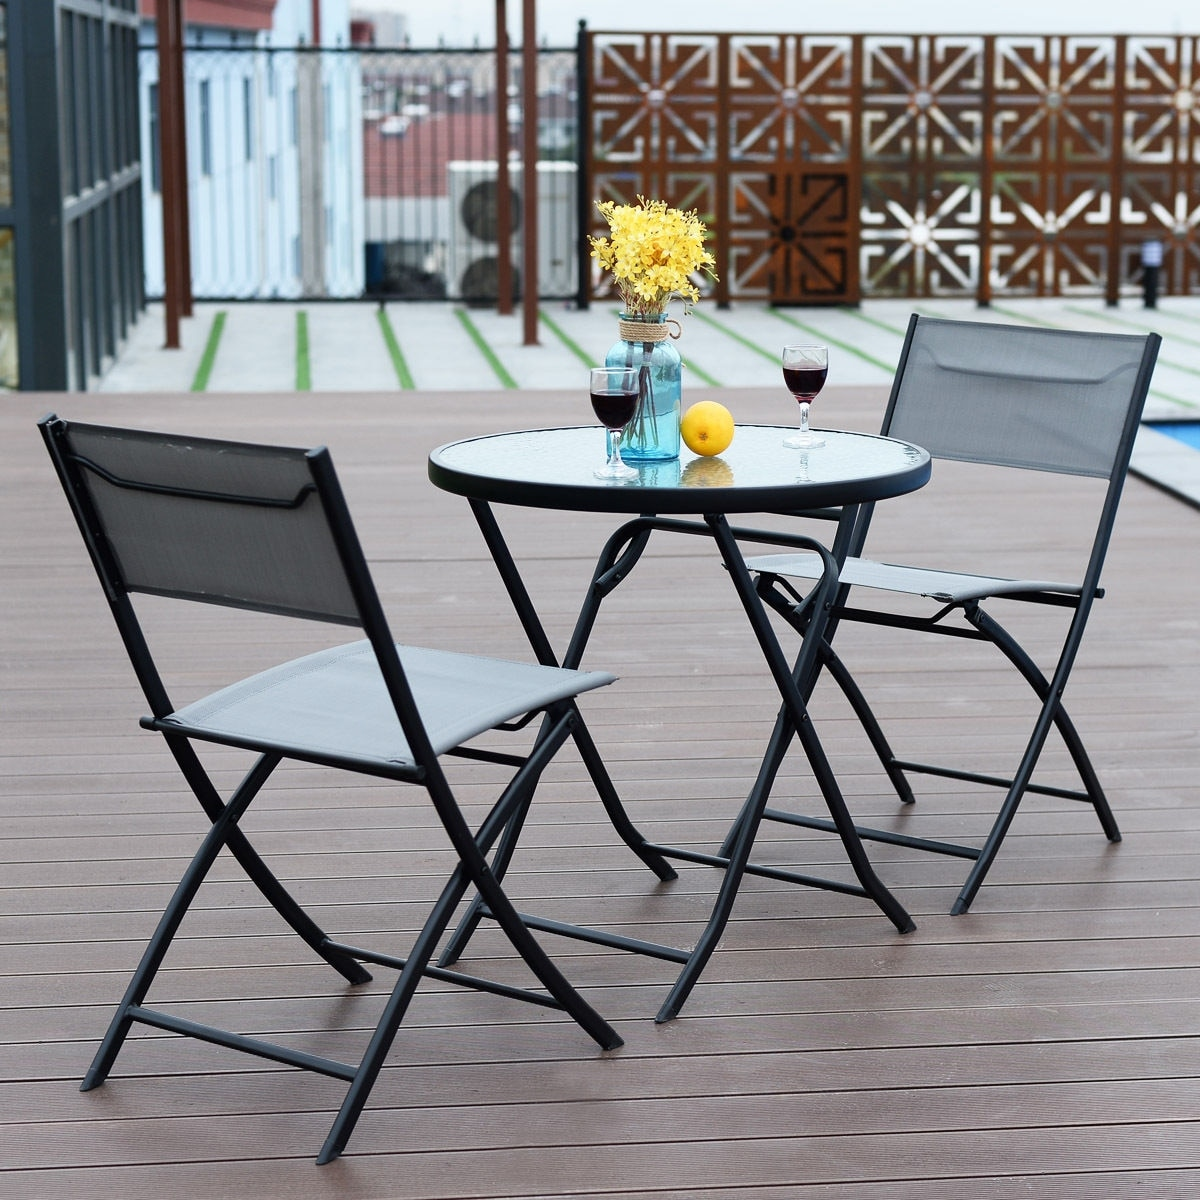 Shop Costway 3 Piece Table Chair Set Metal Tempered Glass Folding